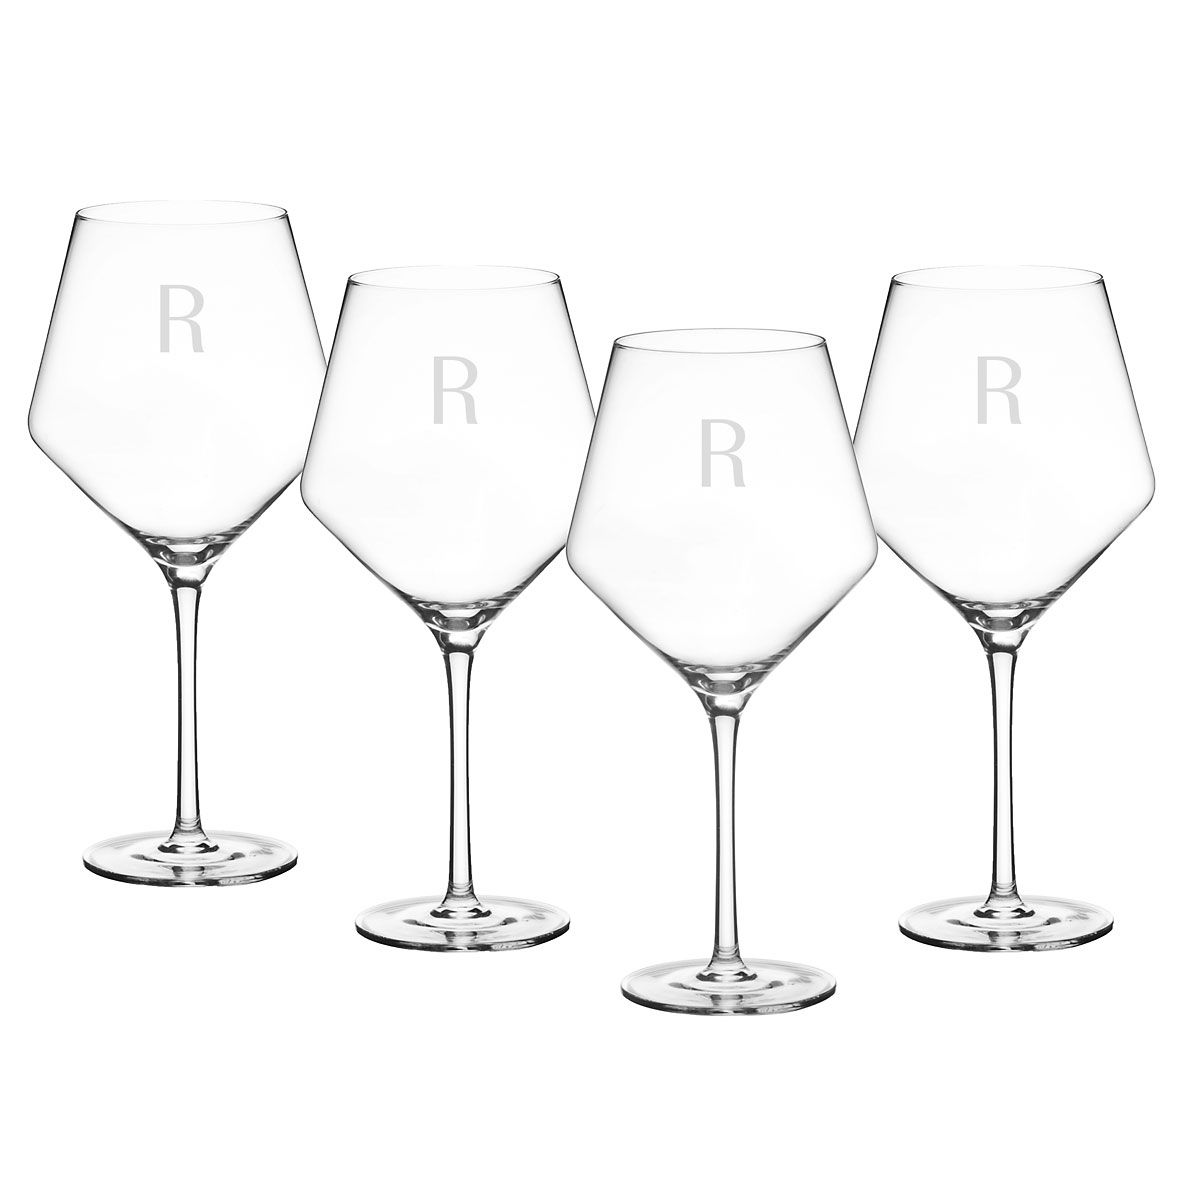 Personalized Estate Red Wine Glasses